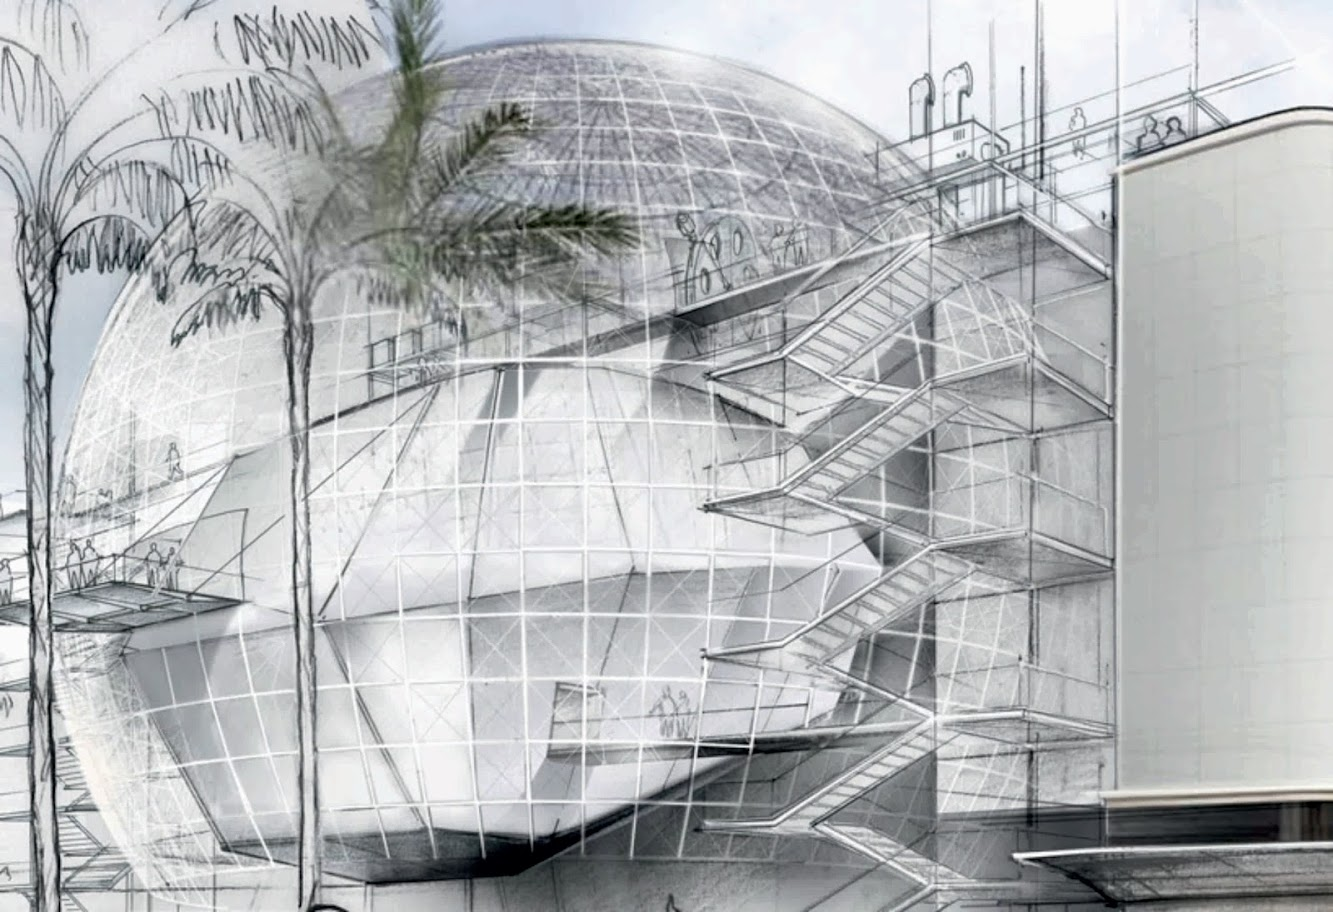 Los Angeles, California, Stati Uniti d'America: Academy Museum of Motion Pictures by Renzo Piano